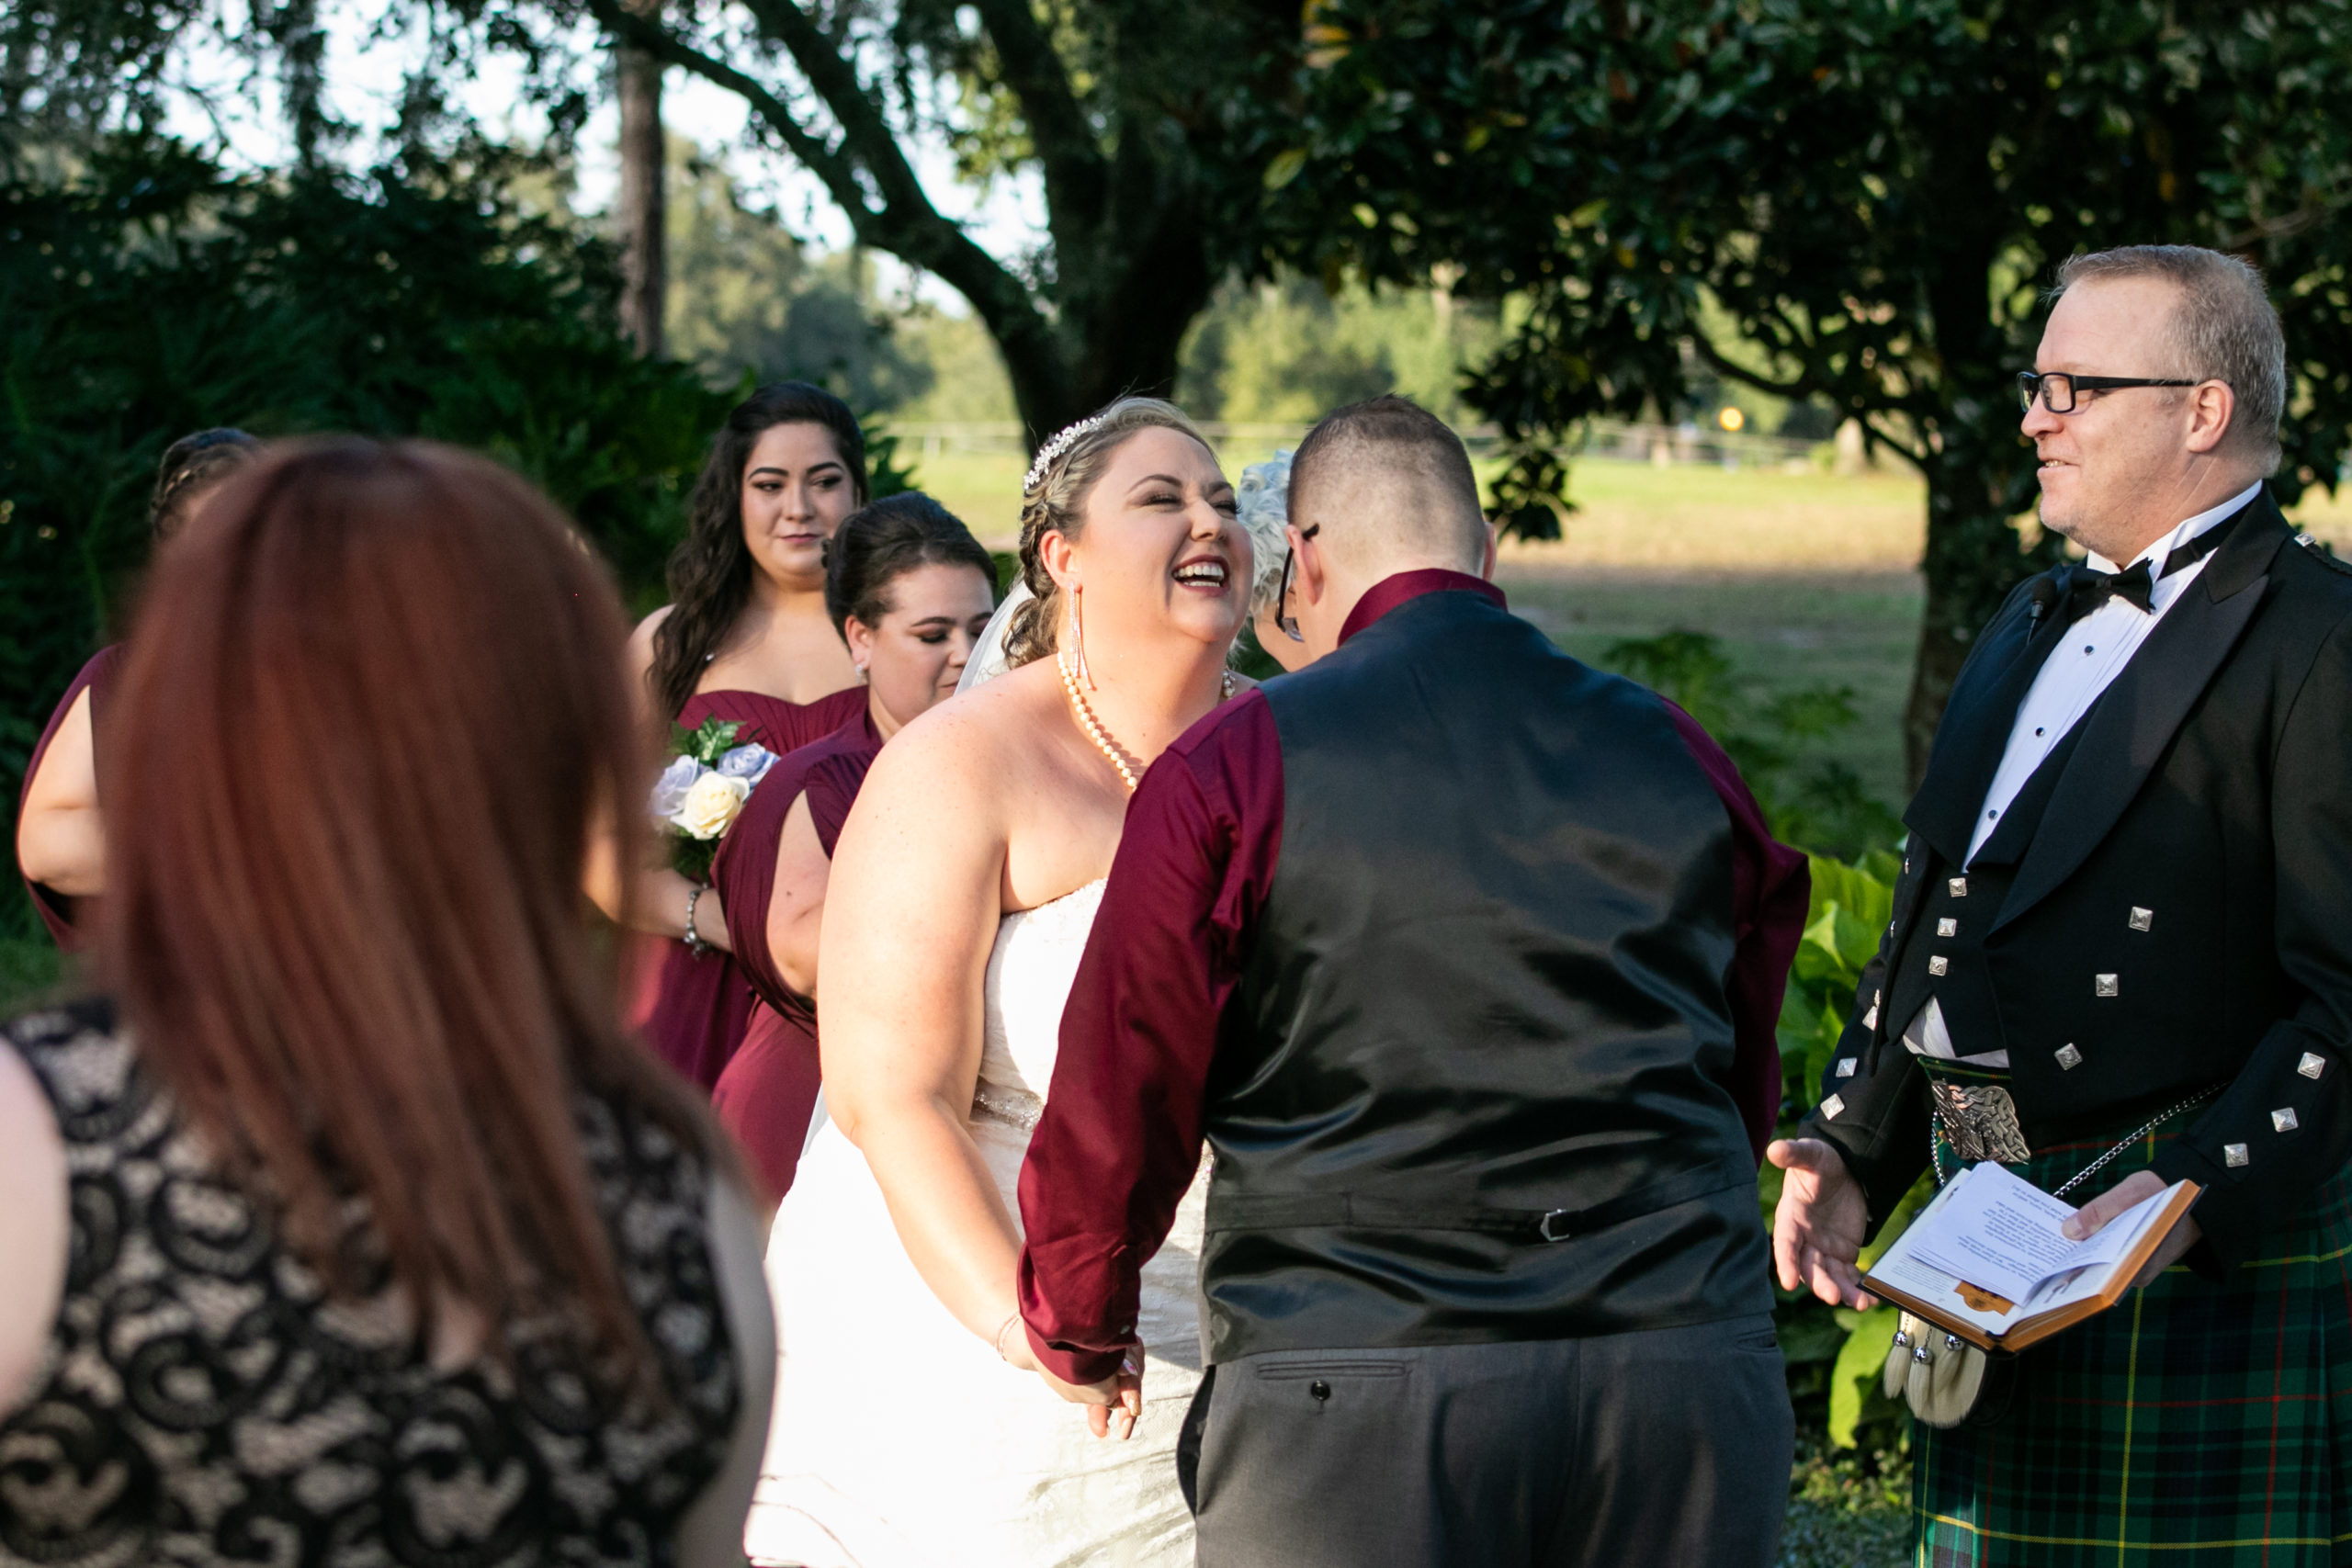 brides laughing and holding hands at wedding ceremony